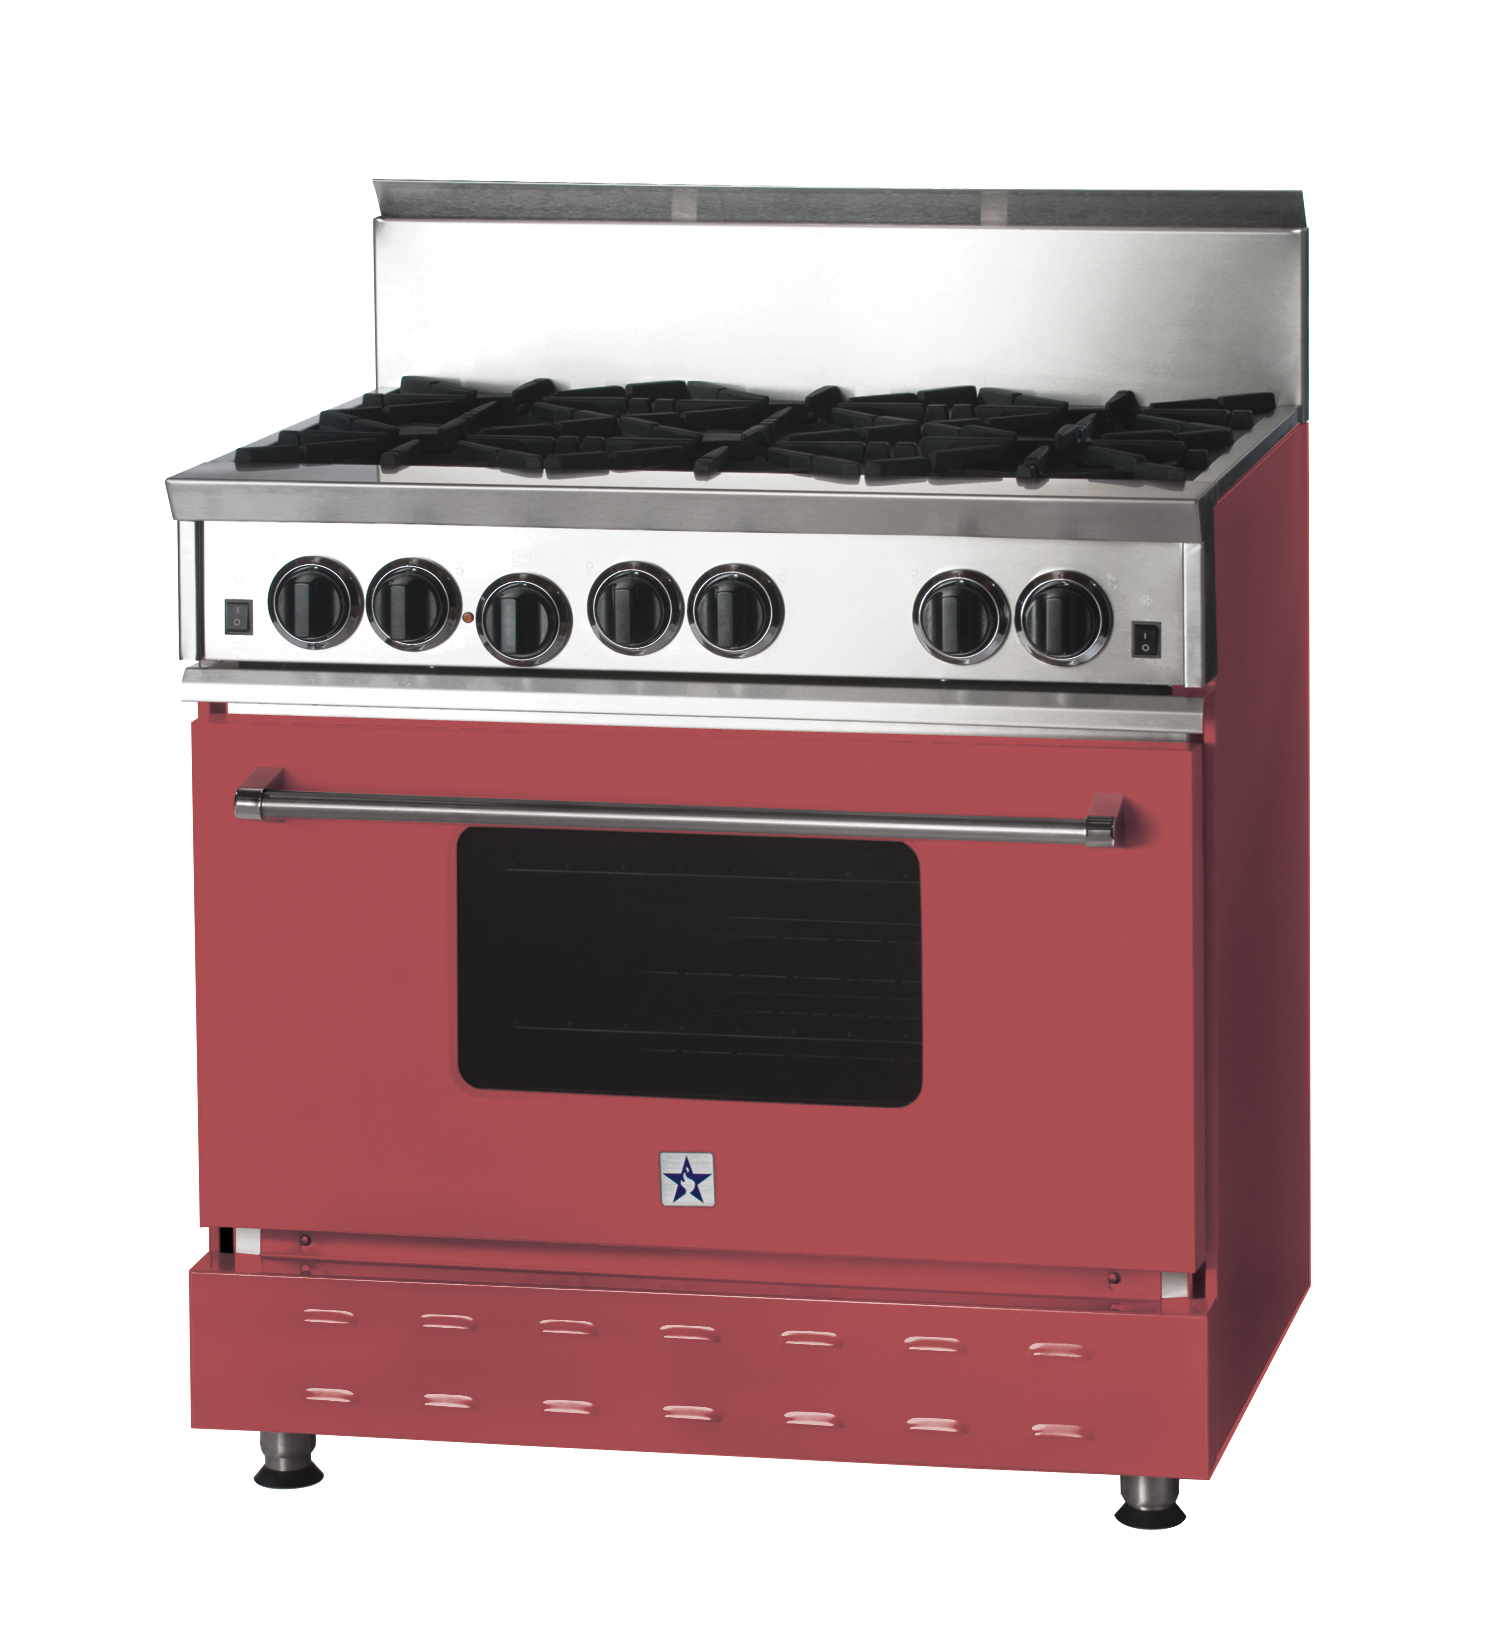 New kitchen appliance colors 2015 - Media